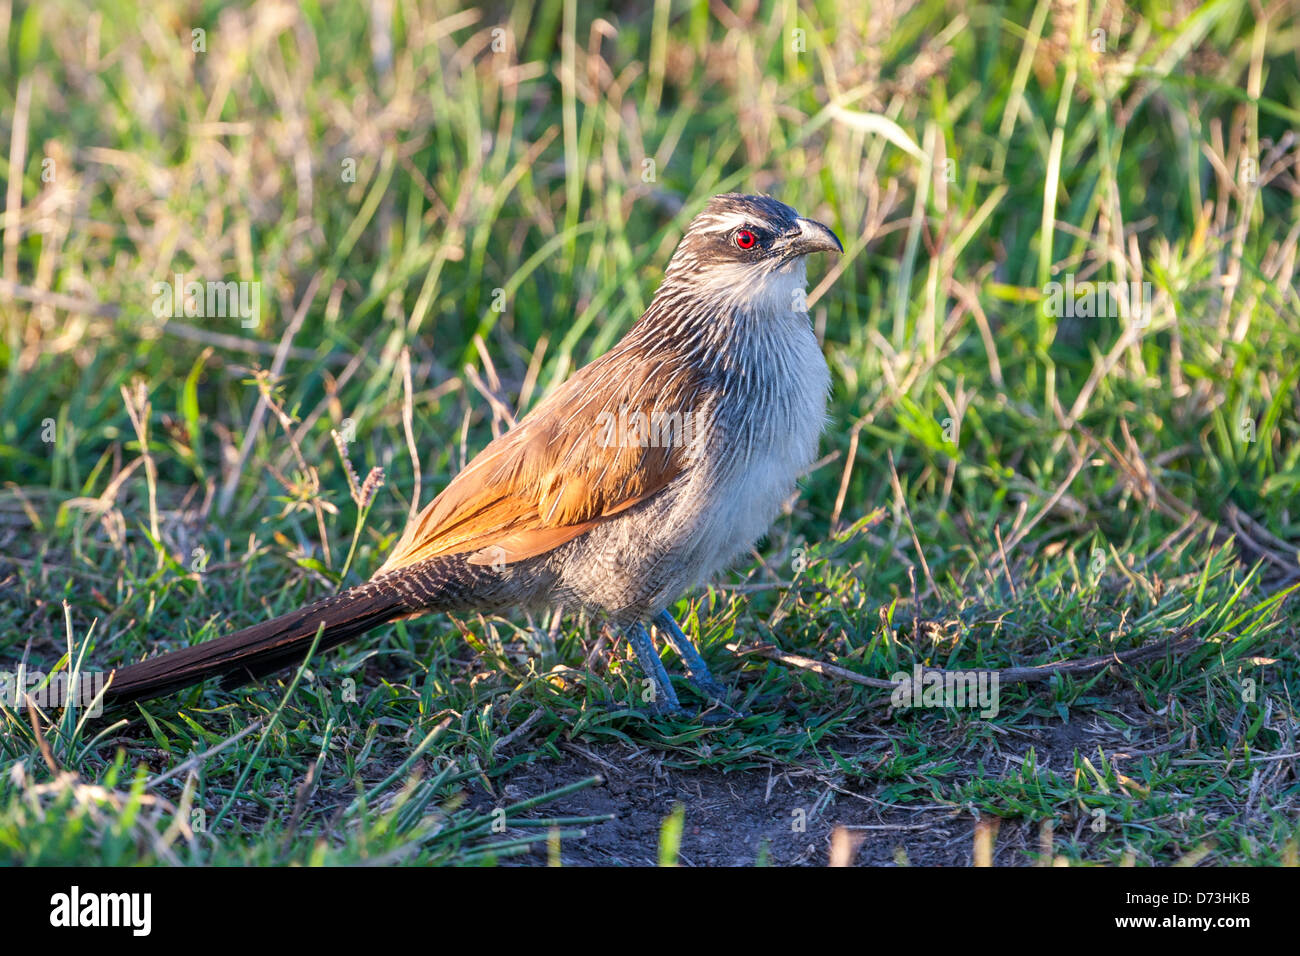 White Browed Coucal - Stock Image